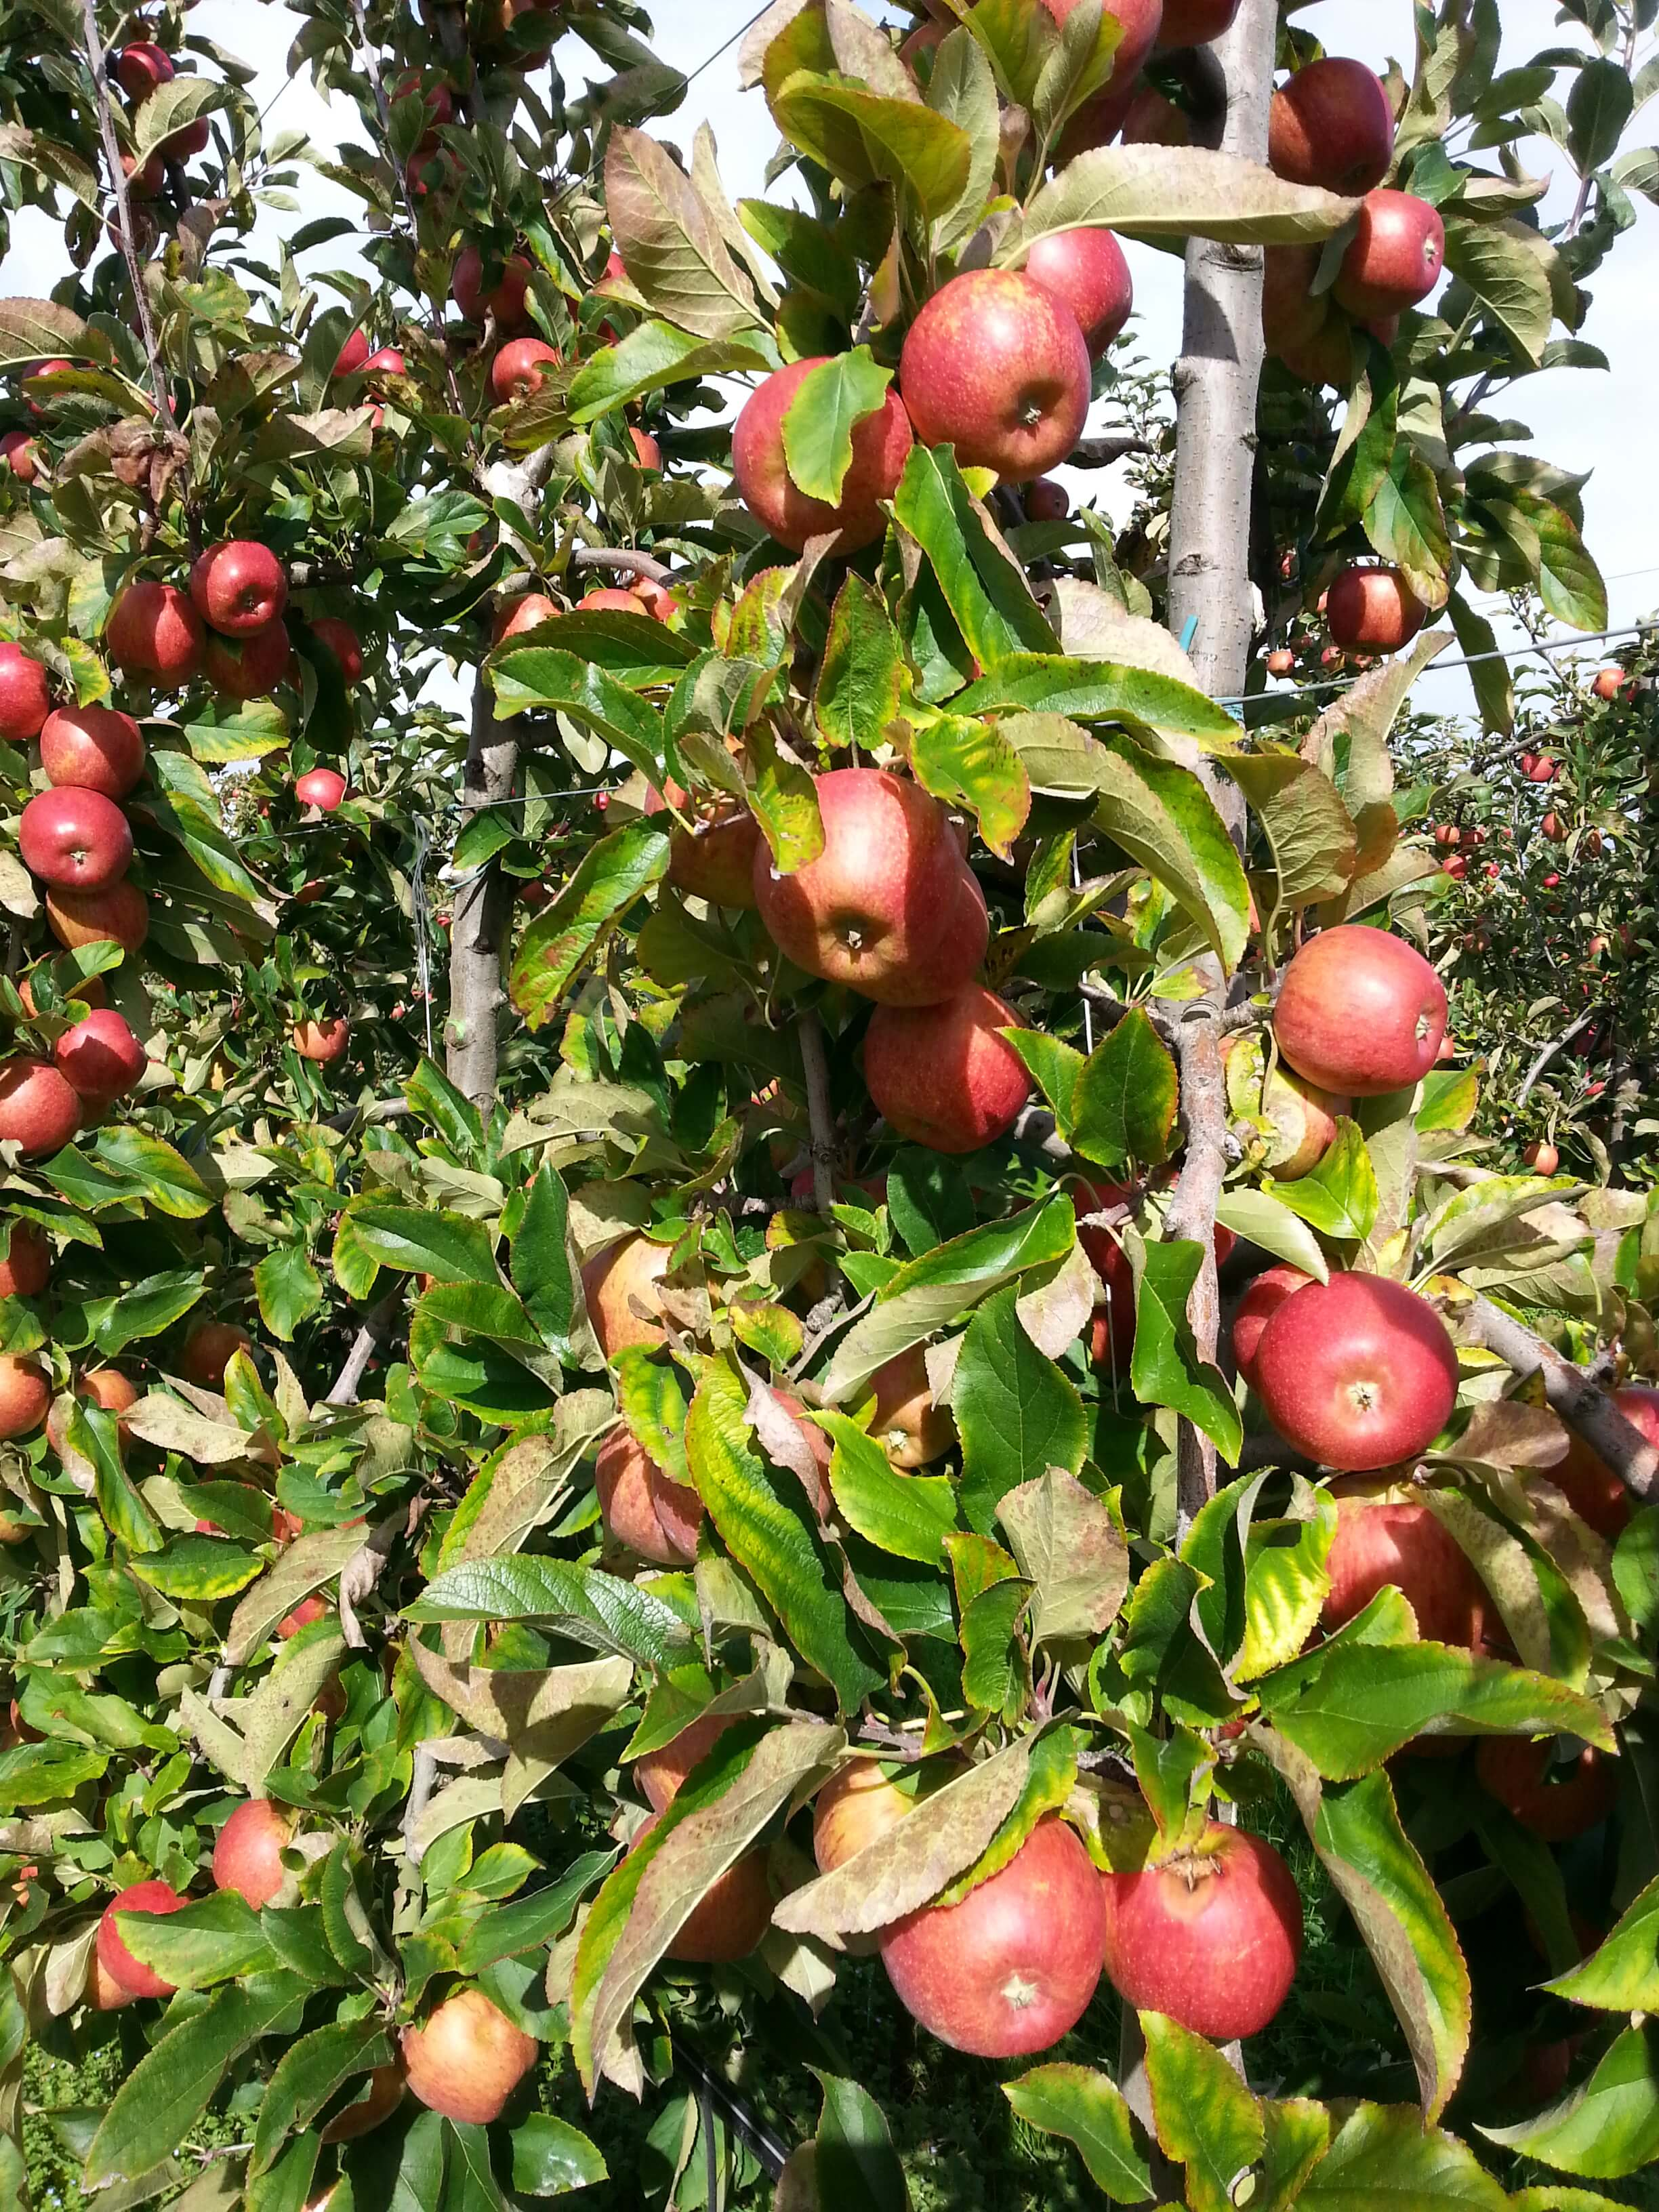 How can I be sure my apples are Australian grown?